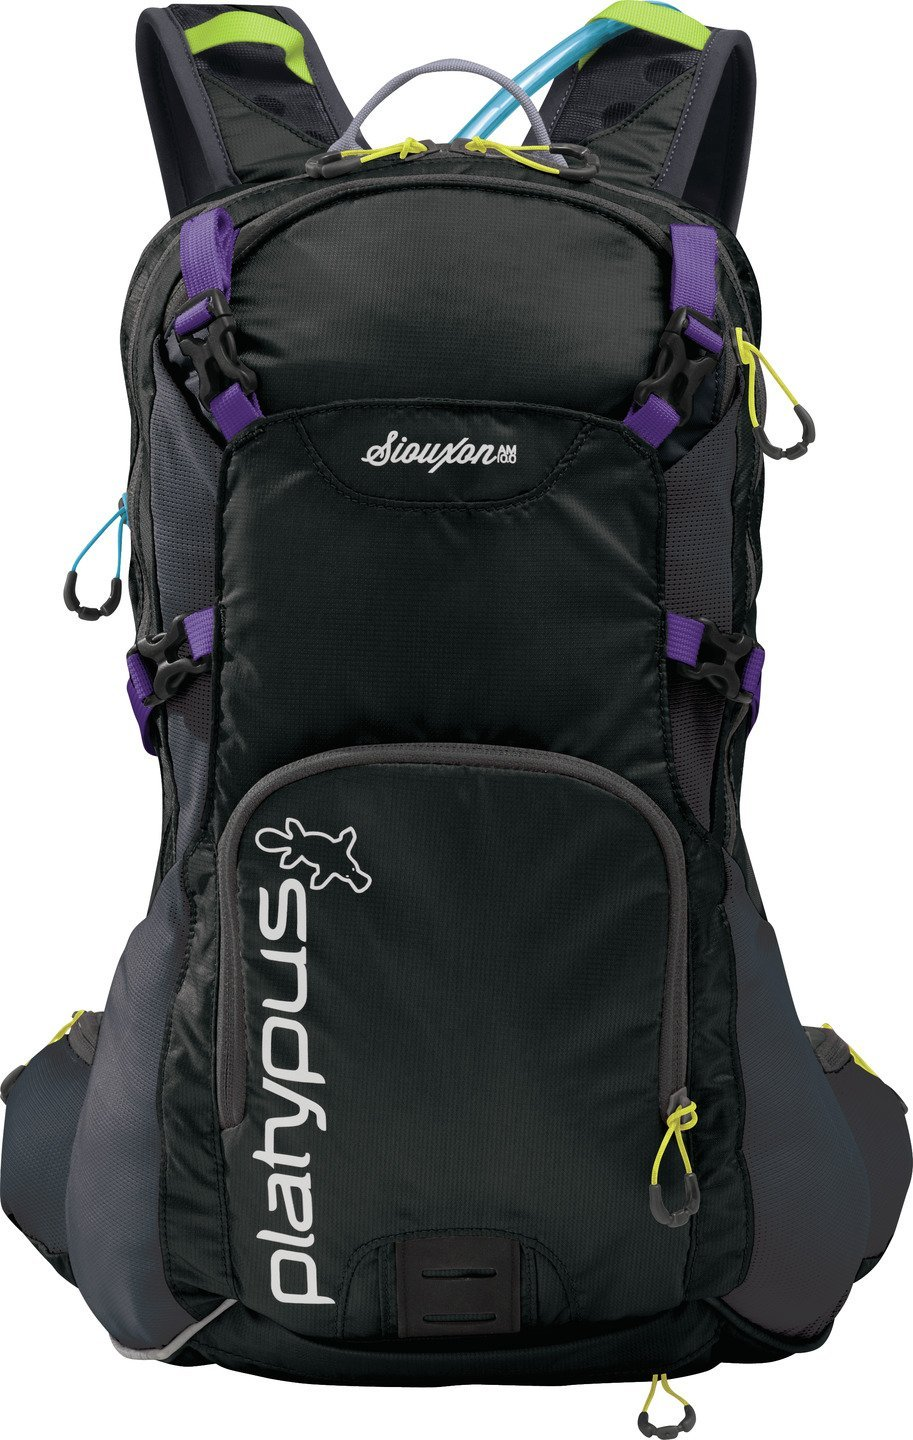 Siouxon Women's Hydration Pack